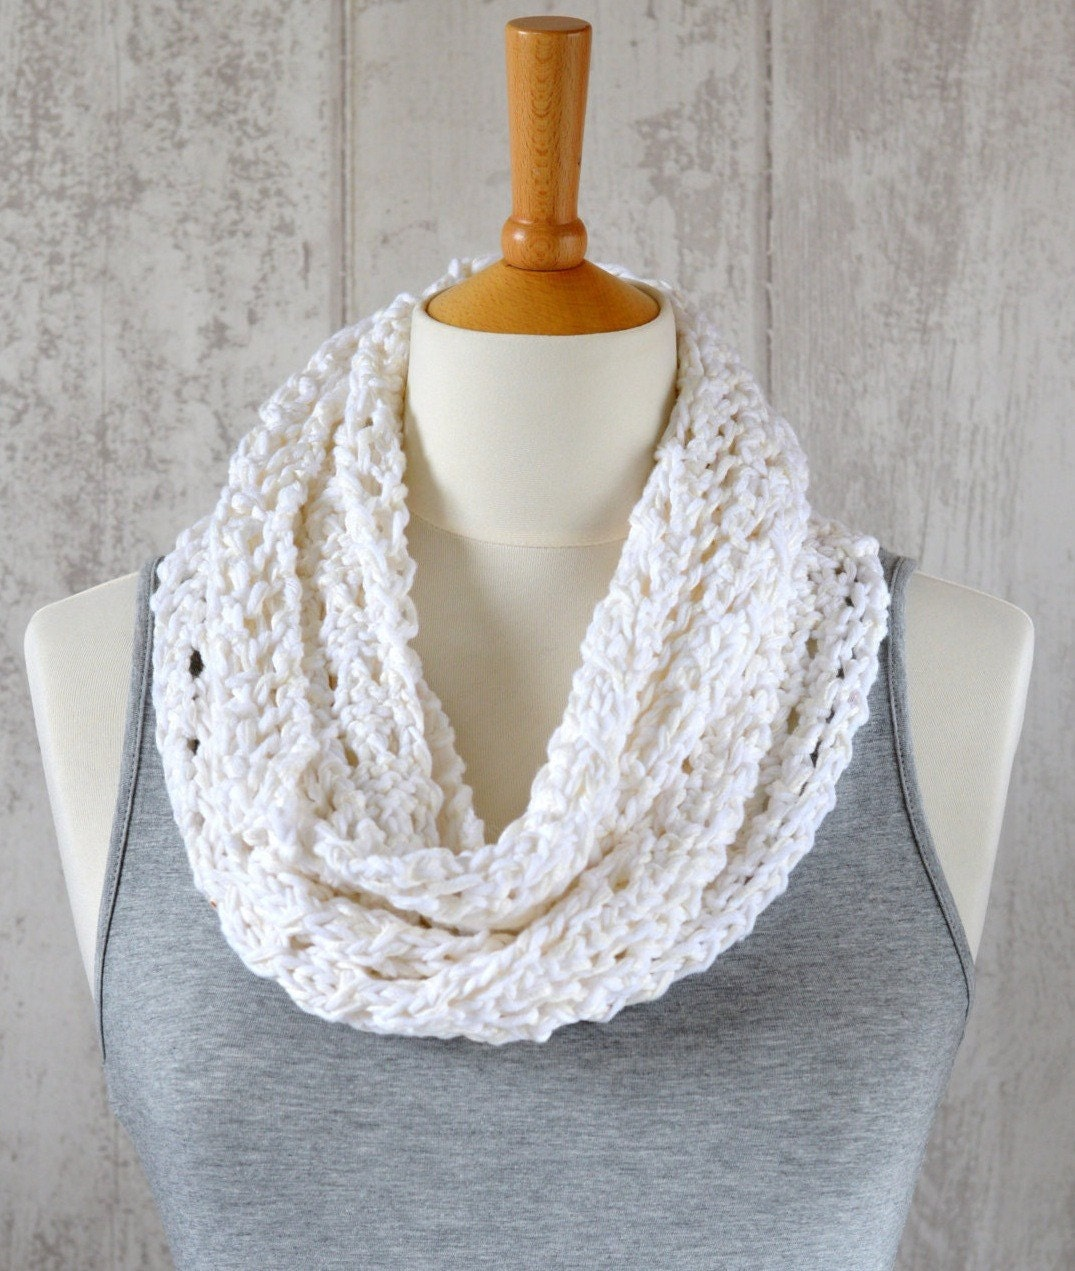 Knitting Pattern Lace Infinity Scarf : KNITTING PATTERN Lace Scarf Simple Knit Pattern Infinity Scarf